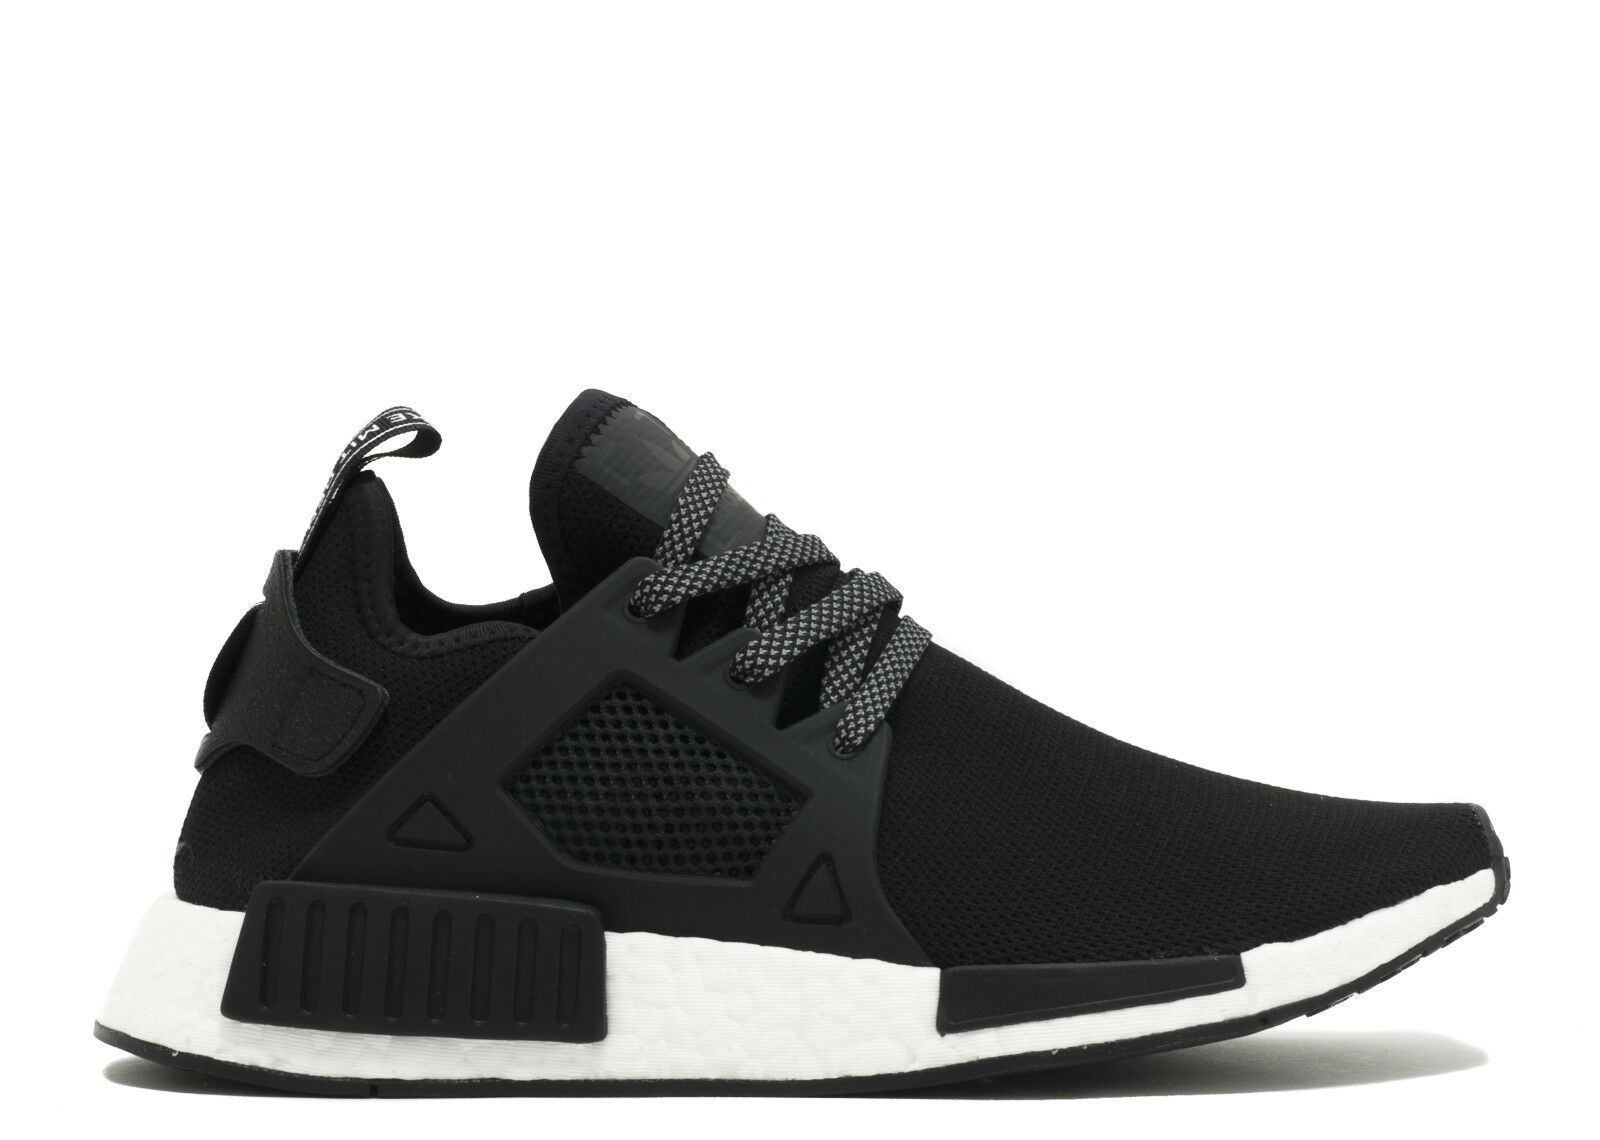 Adidas NMD R1 Europe FootLocker Exclusive BY3050 core black limited Nomad sz 13